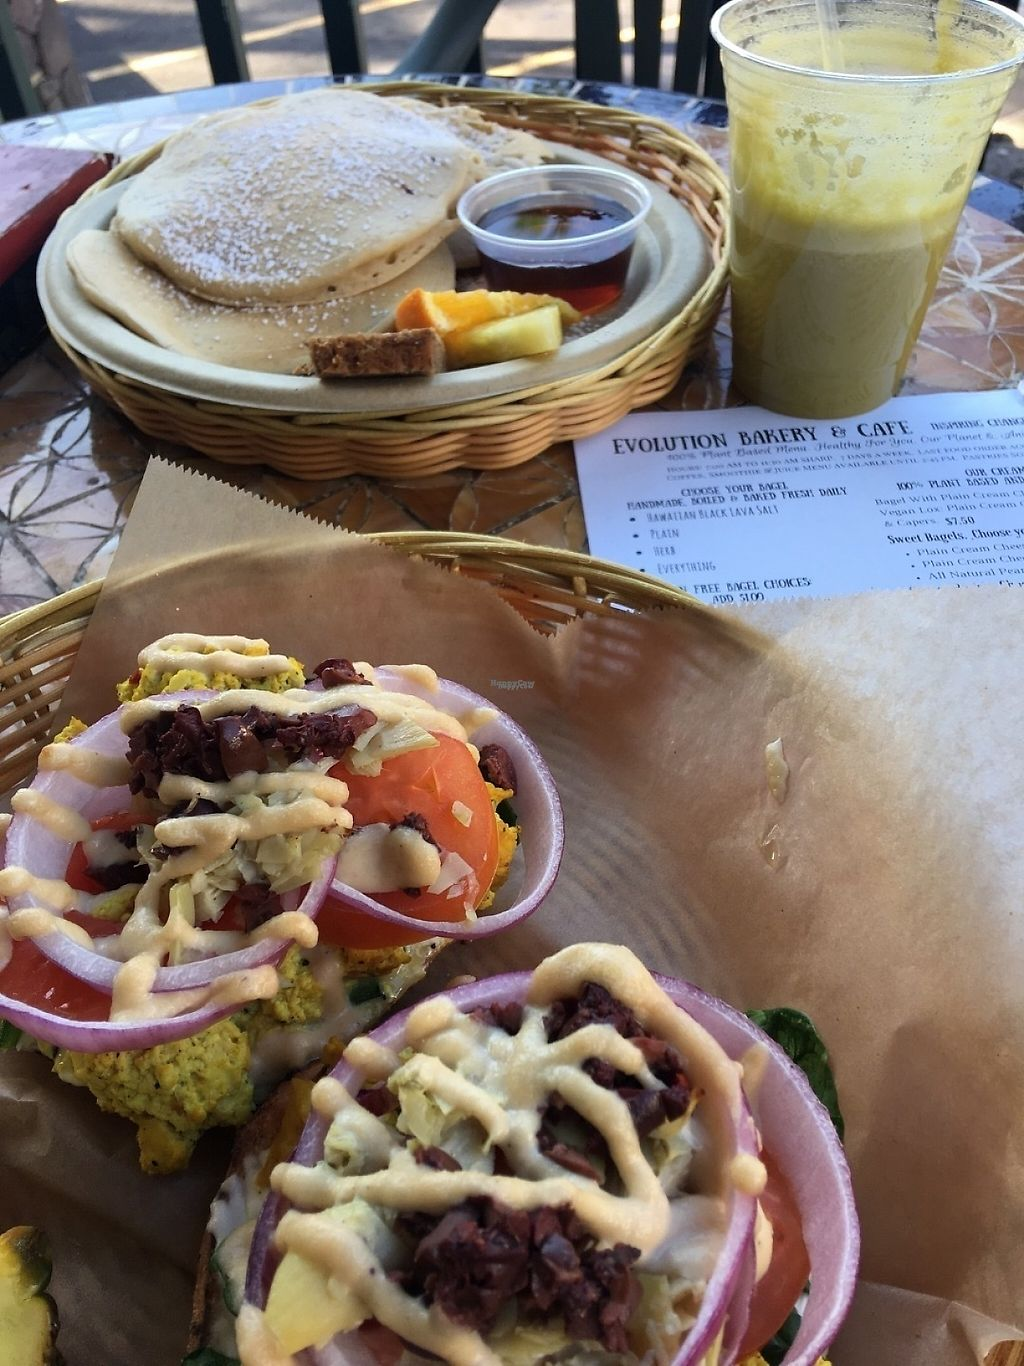 """Photo of Evolution Bakery and Cafe  by <a href=""""/members/profile/myra975"""">myra975</a> <br/>The Athena / Pancakes <br/> March 7, 2017  - <a href='/contact/abuse/image/43352/233877'>Report</a>"""